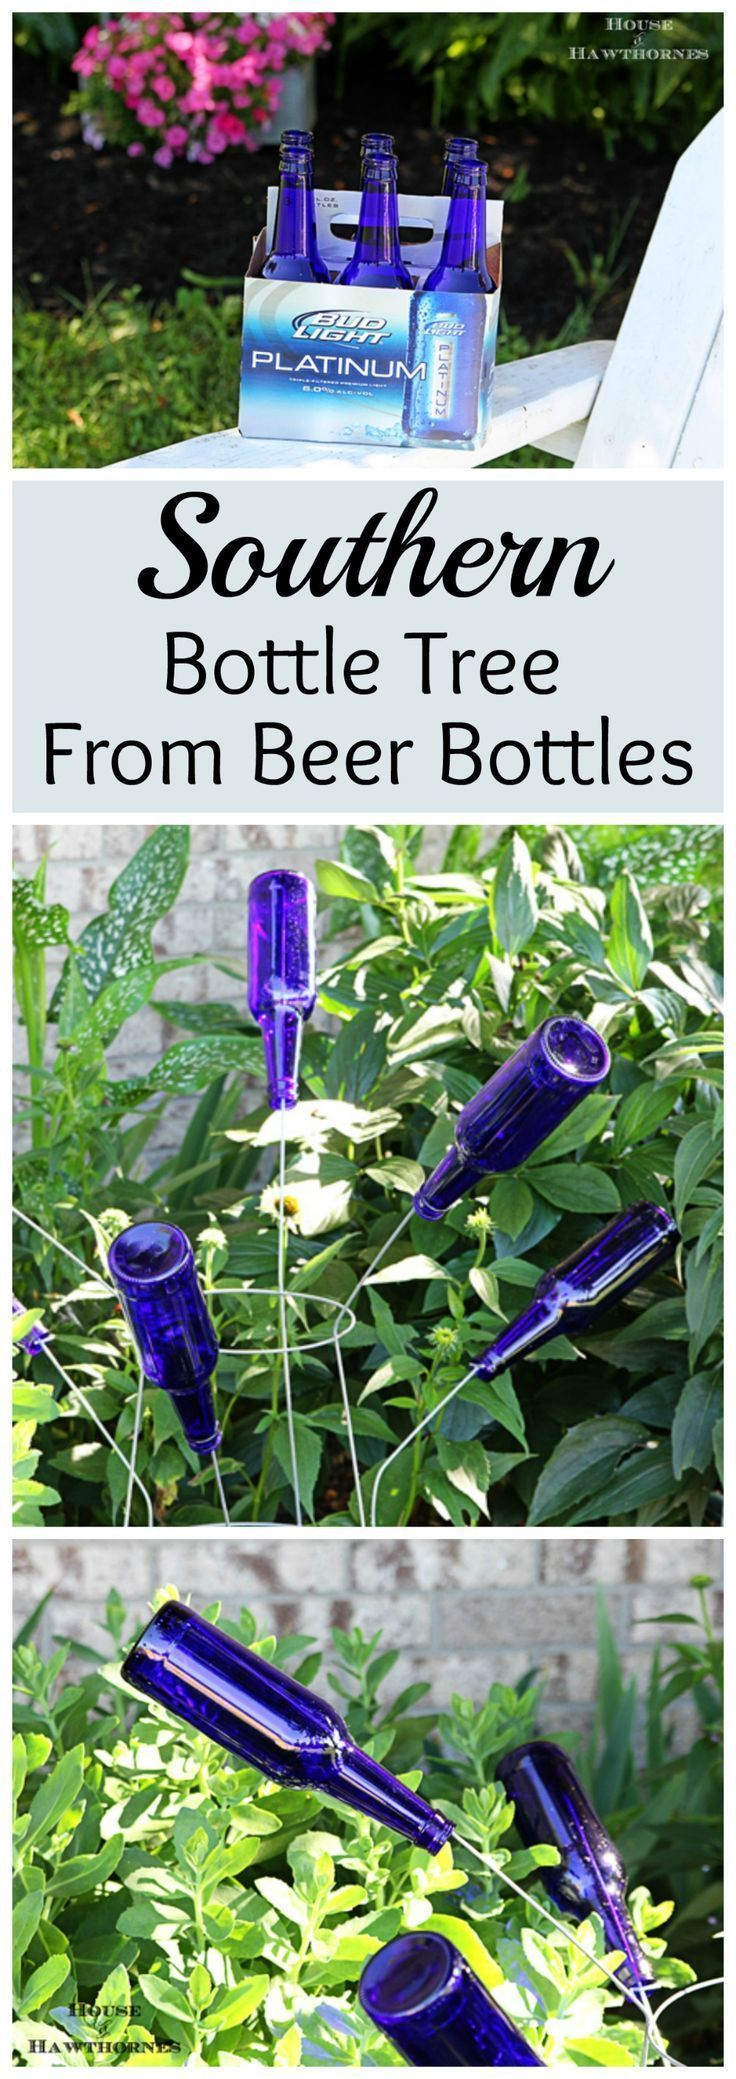 Fun DIY Southern bottle tree made with blue beer bottles - super duper easy to make.